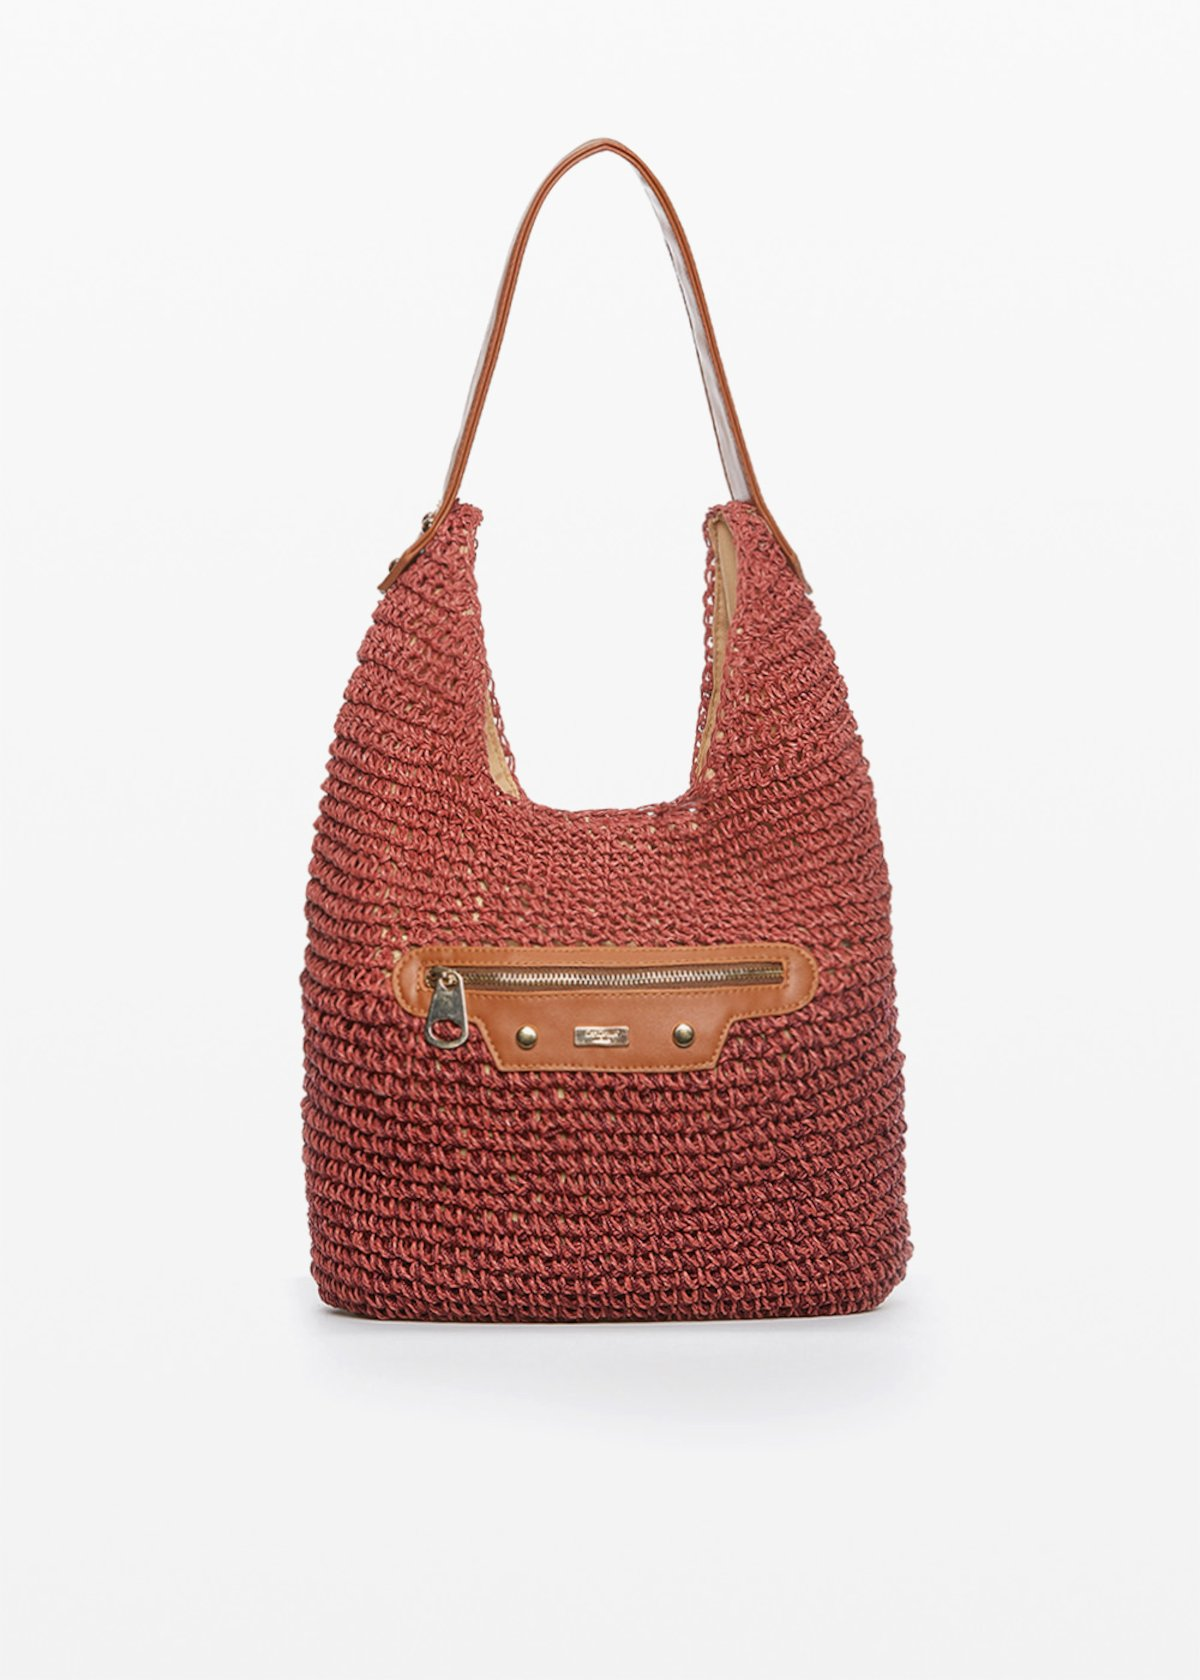 Bicolor Woven Straw Hobo Bag Broken - Morello - Woman